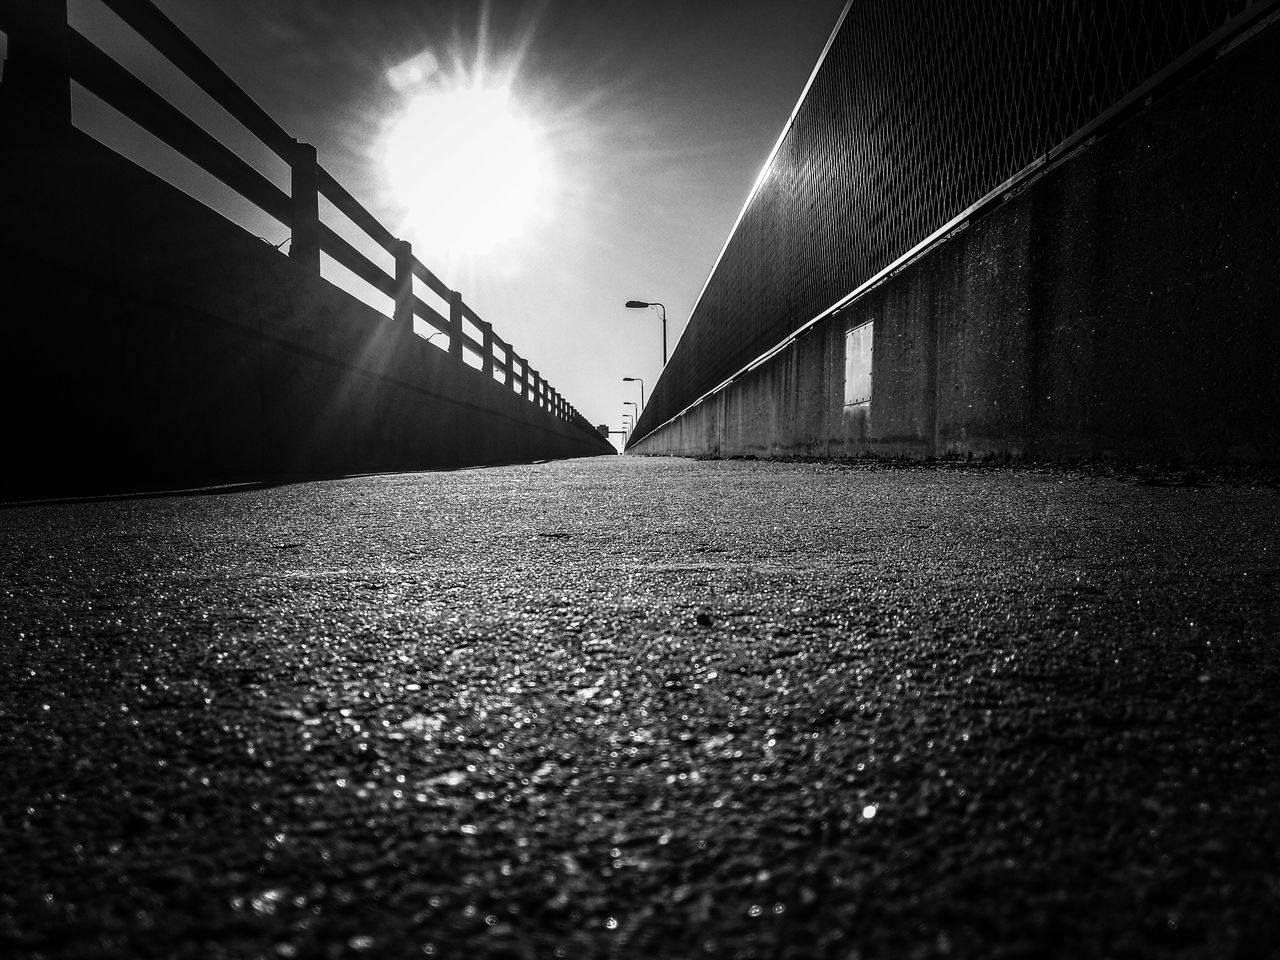 surface level, architecture, built structure, transportation, bridge - man made structure, no people, day, outdoors, the way forward, sunlight, sky